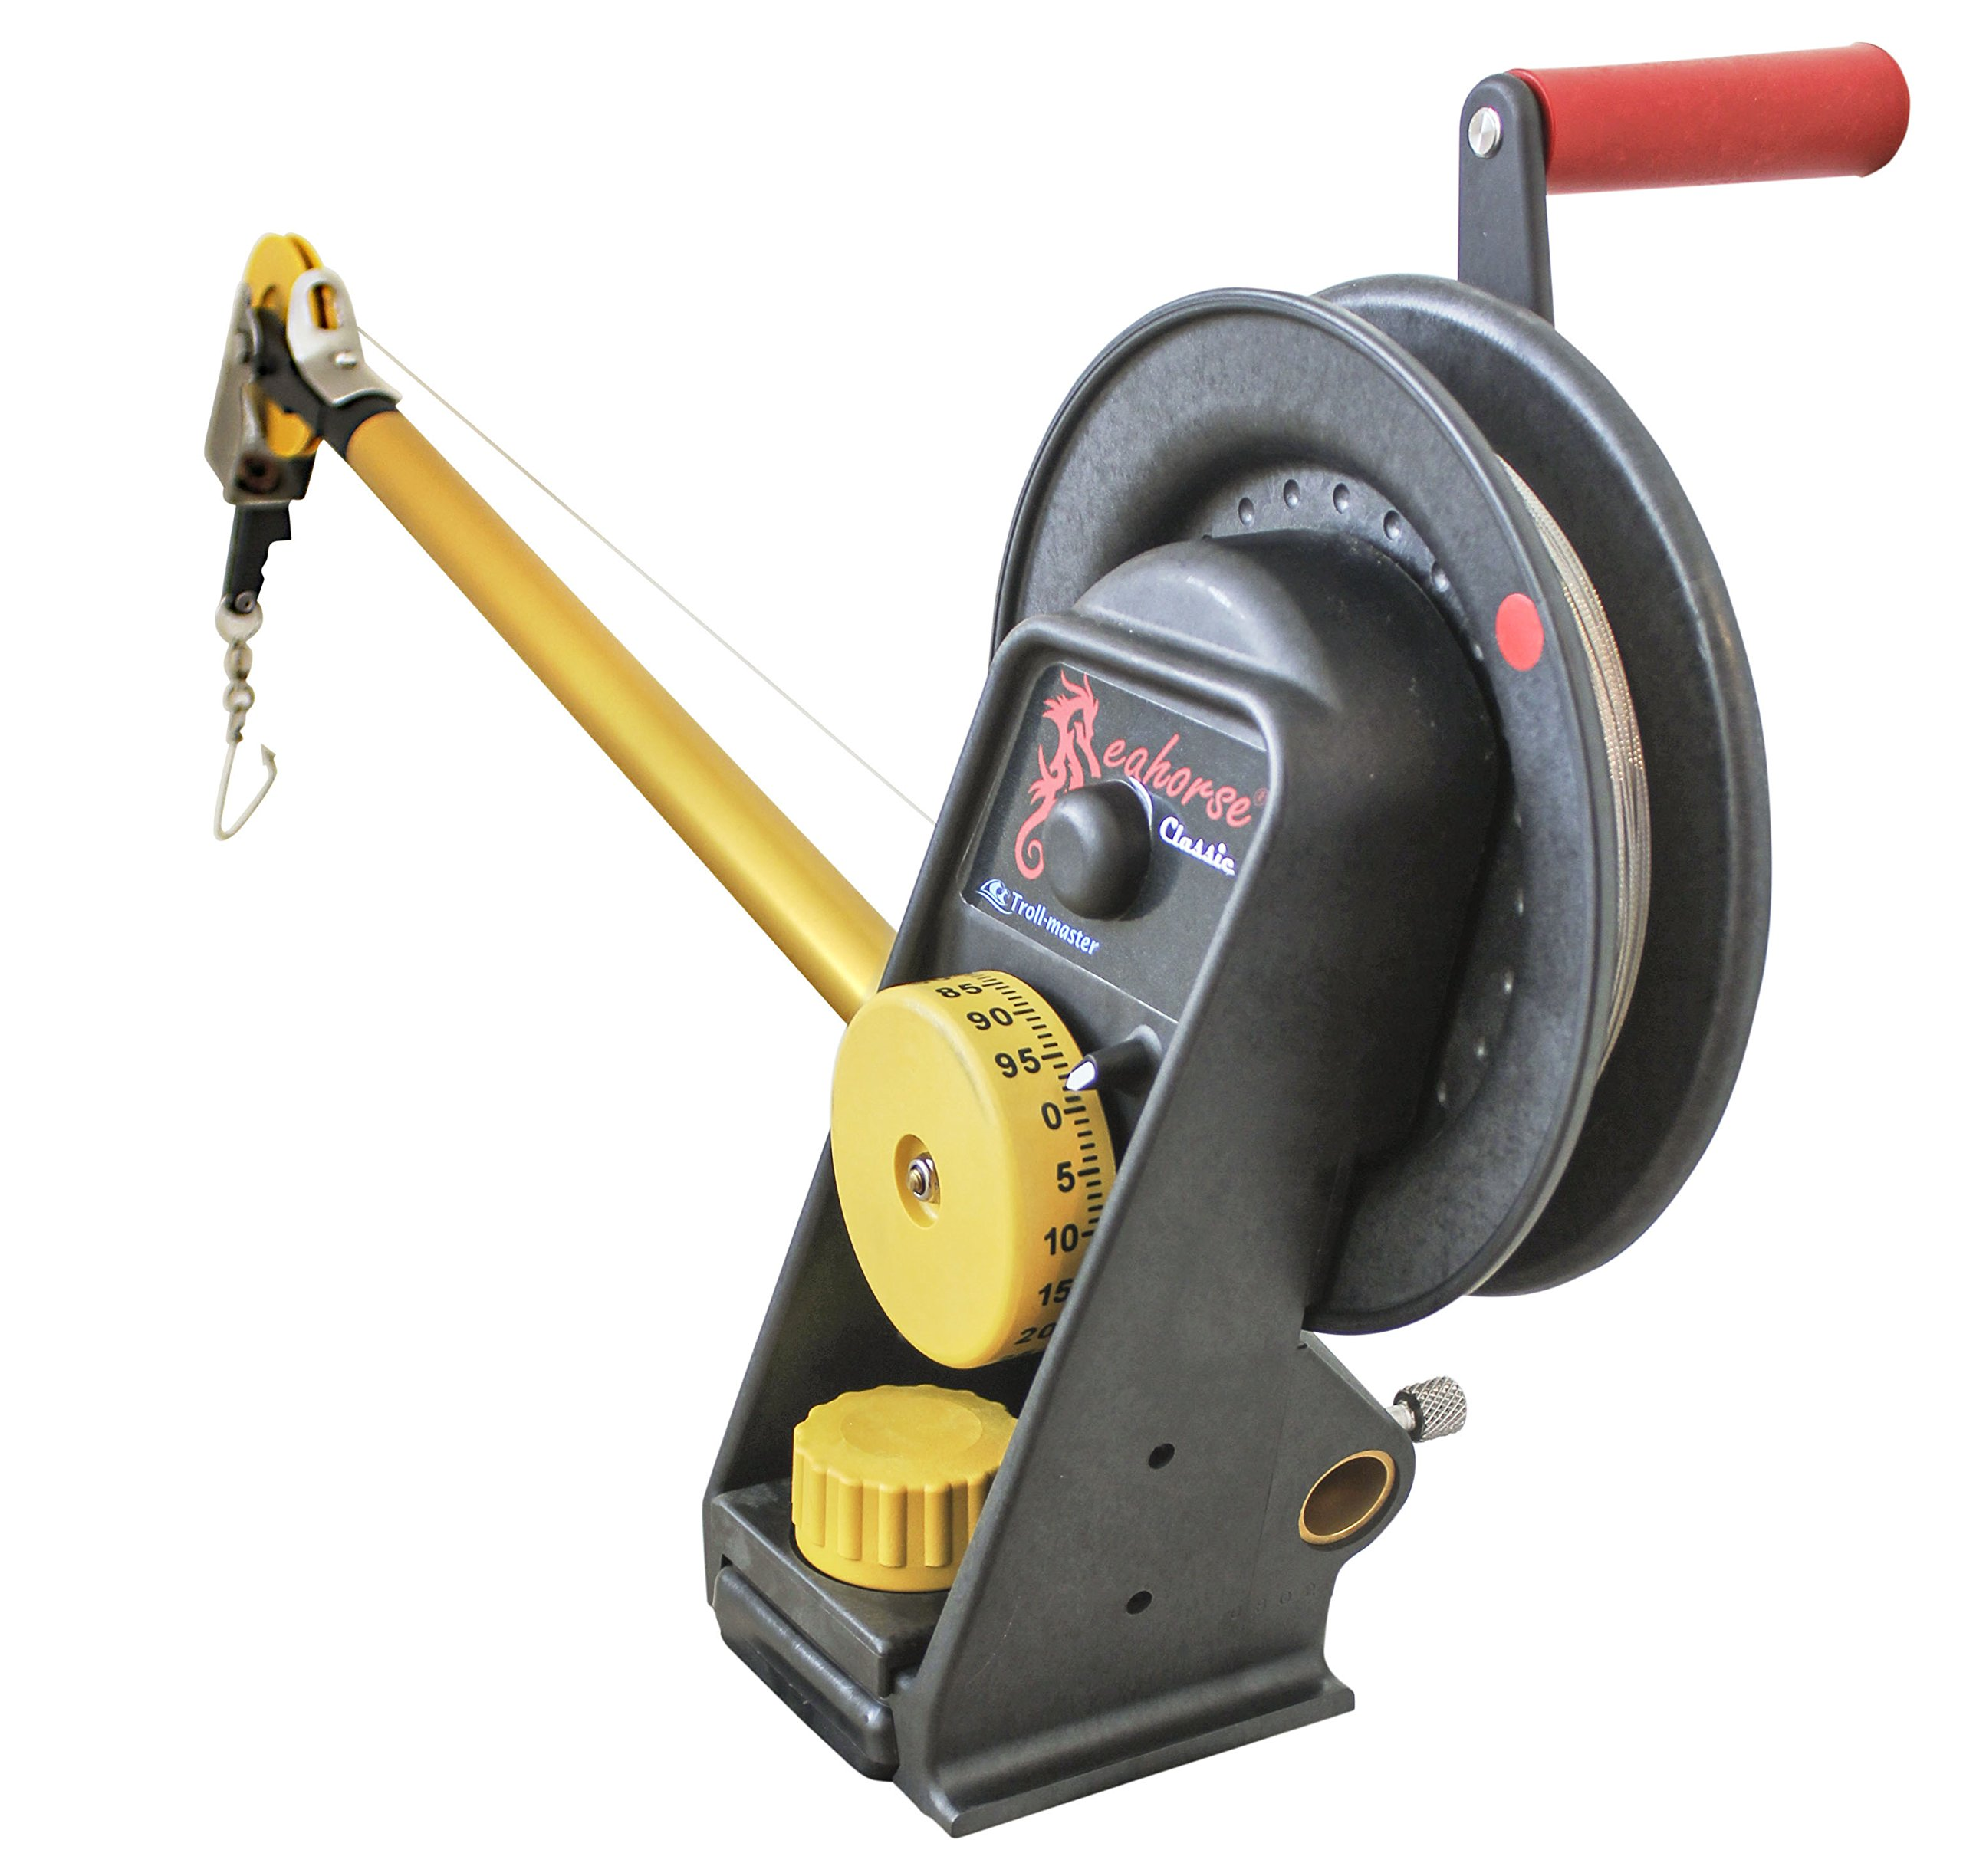 Seahorse Manual Downrigger System By Troll-master